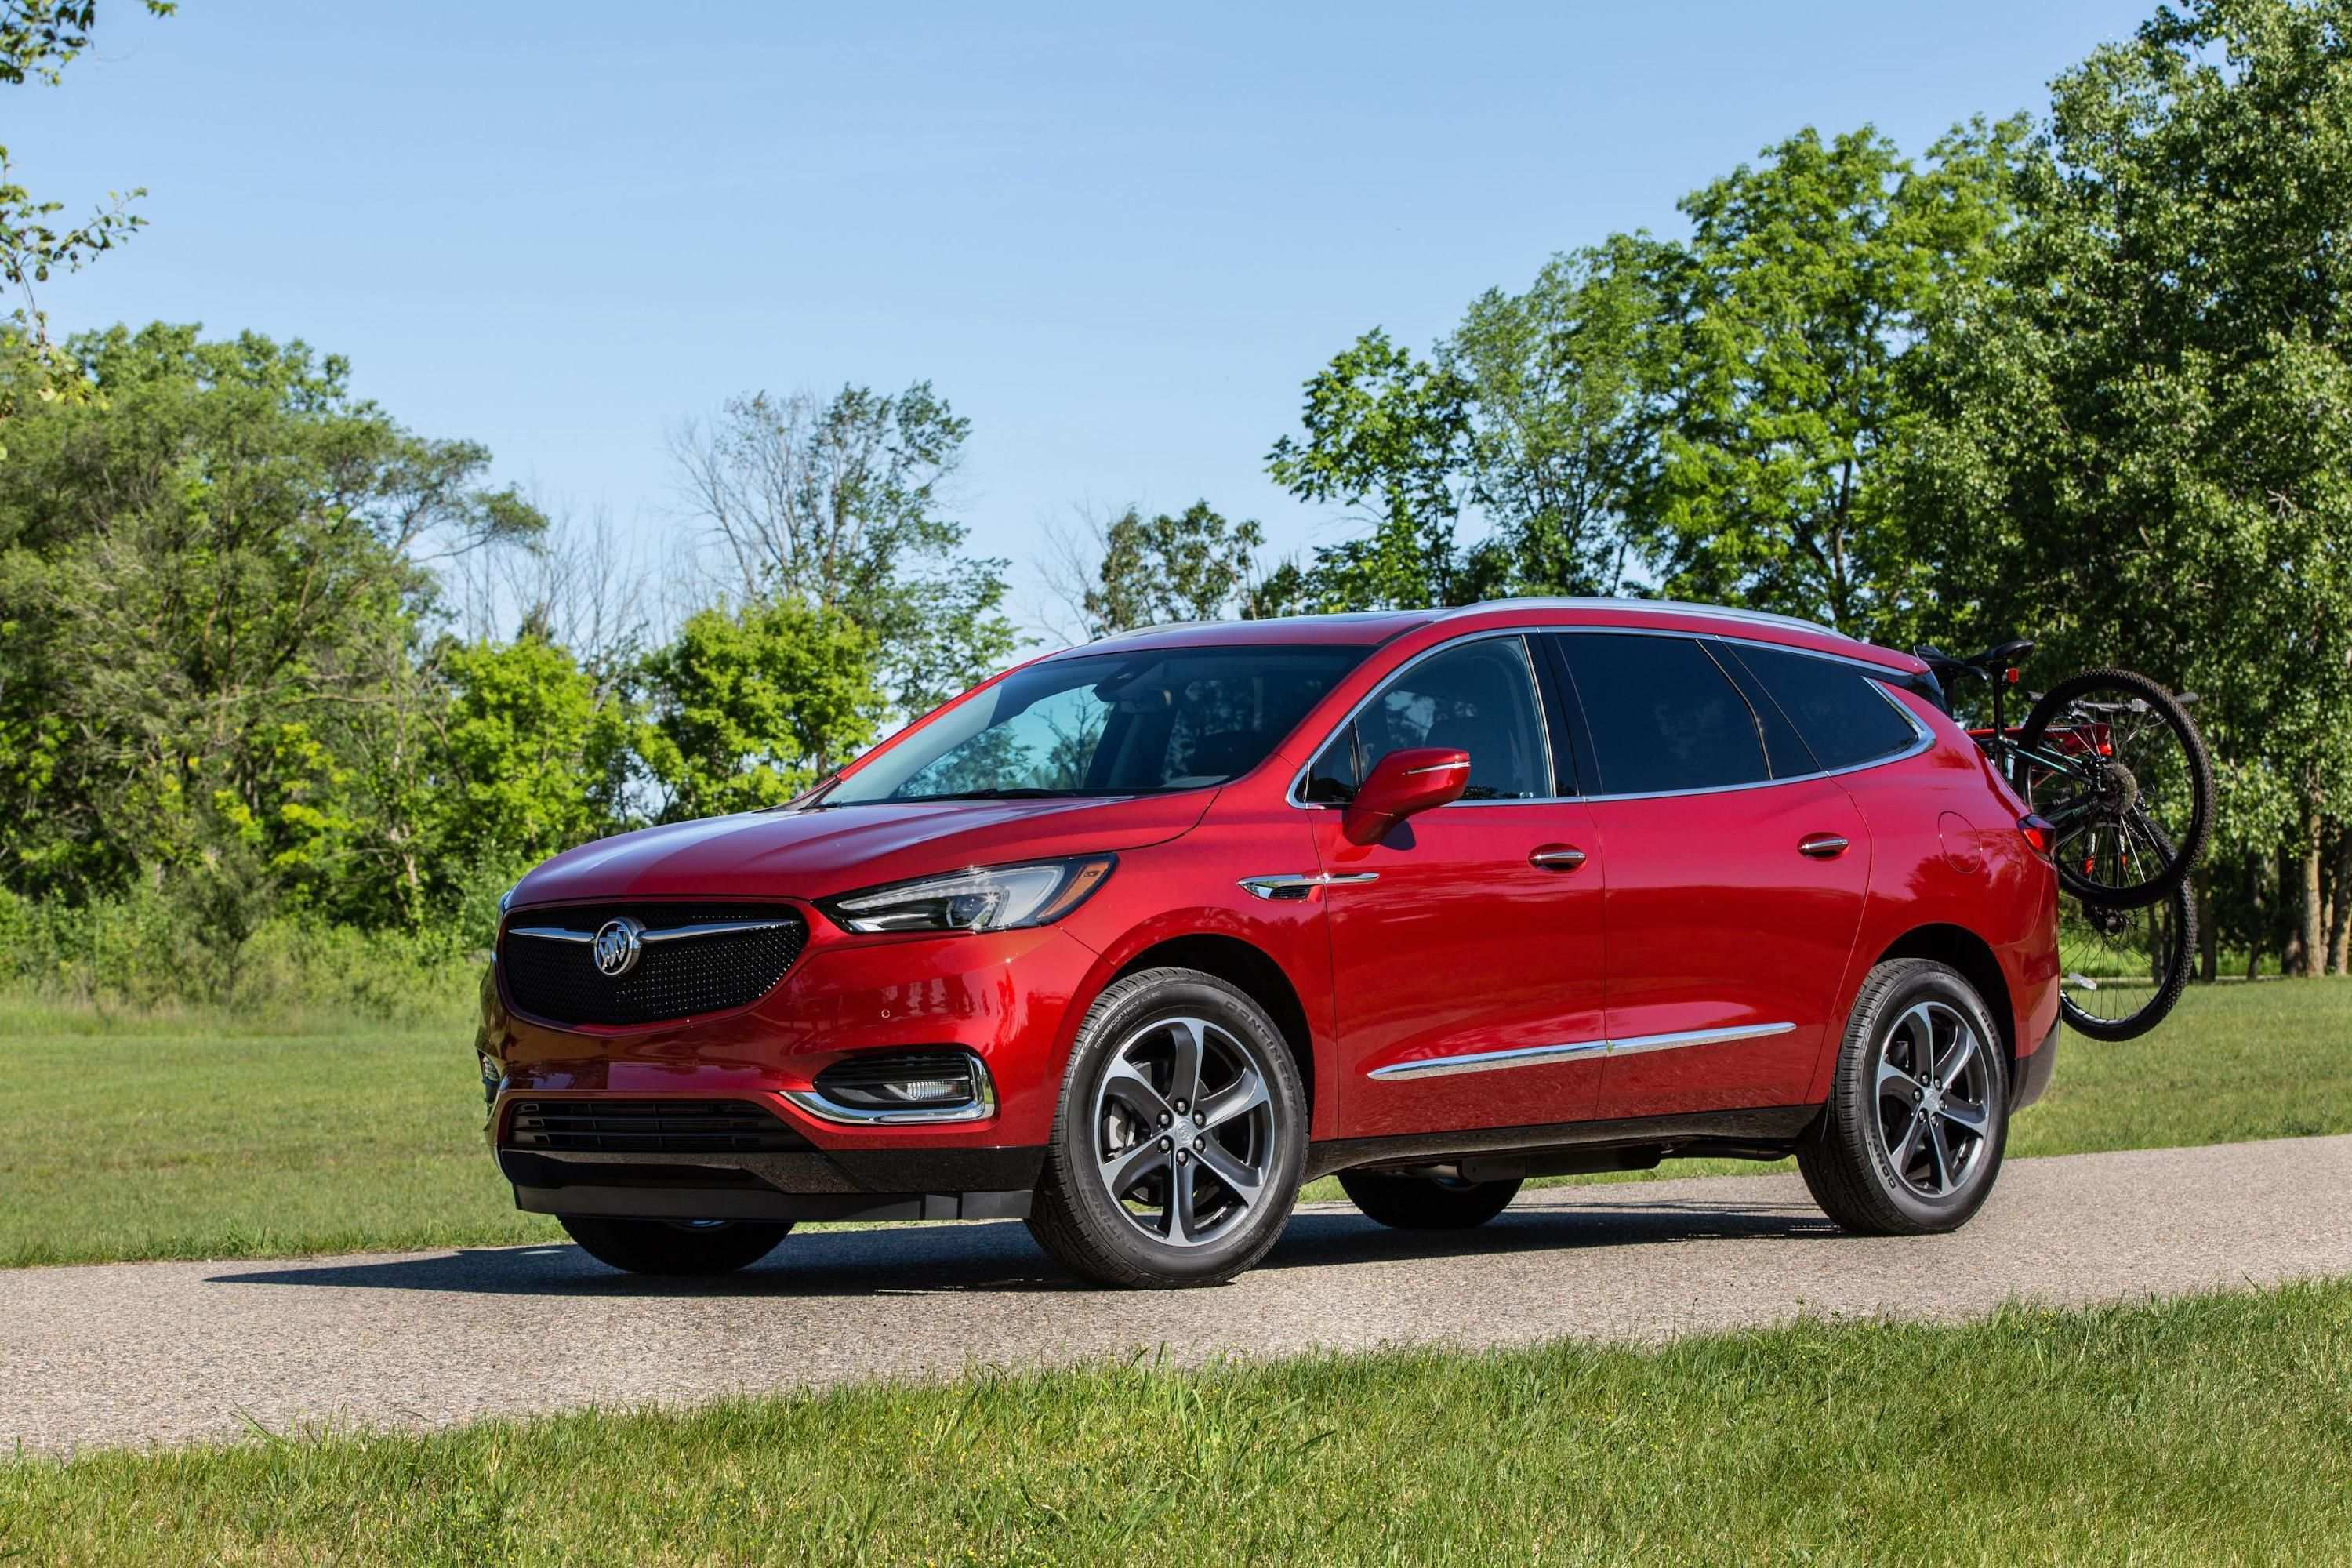 51 The Best 2020 Buick Vehicles Model